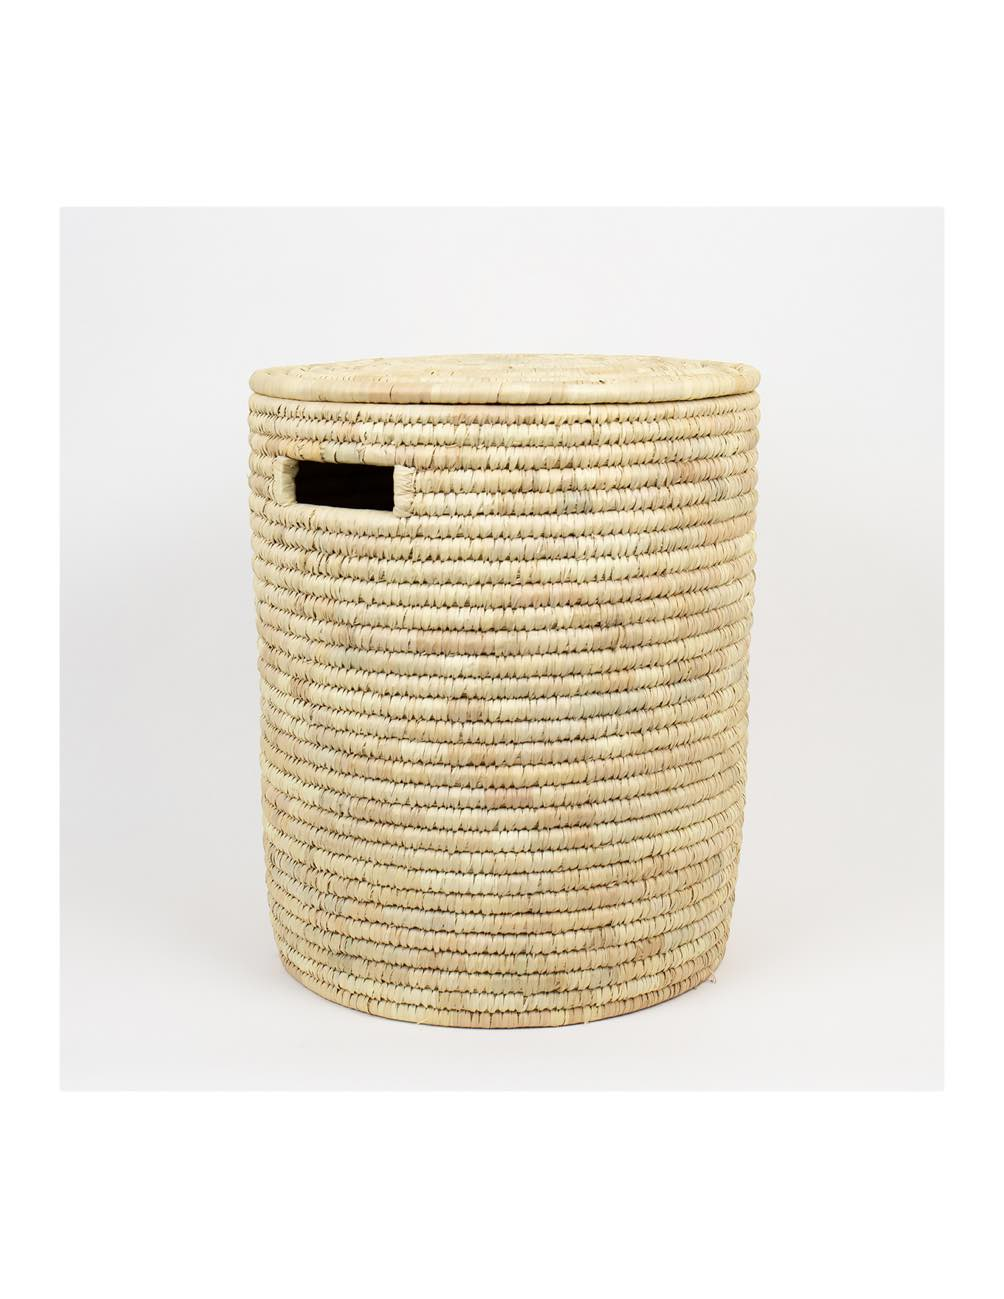 Large Palm Laundry basket